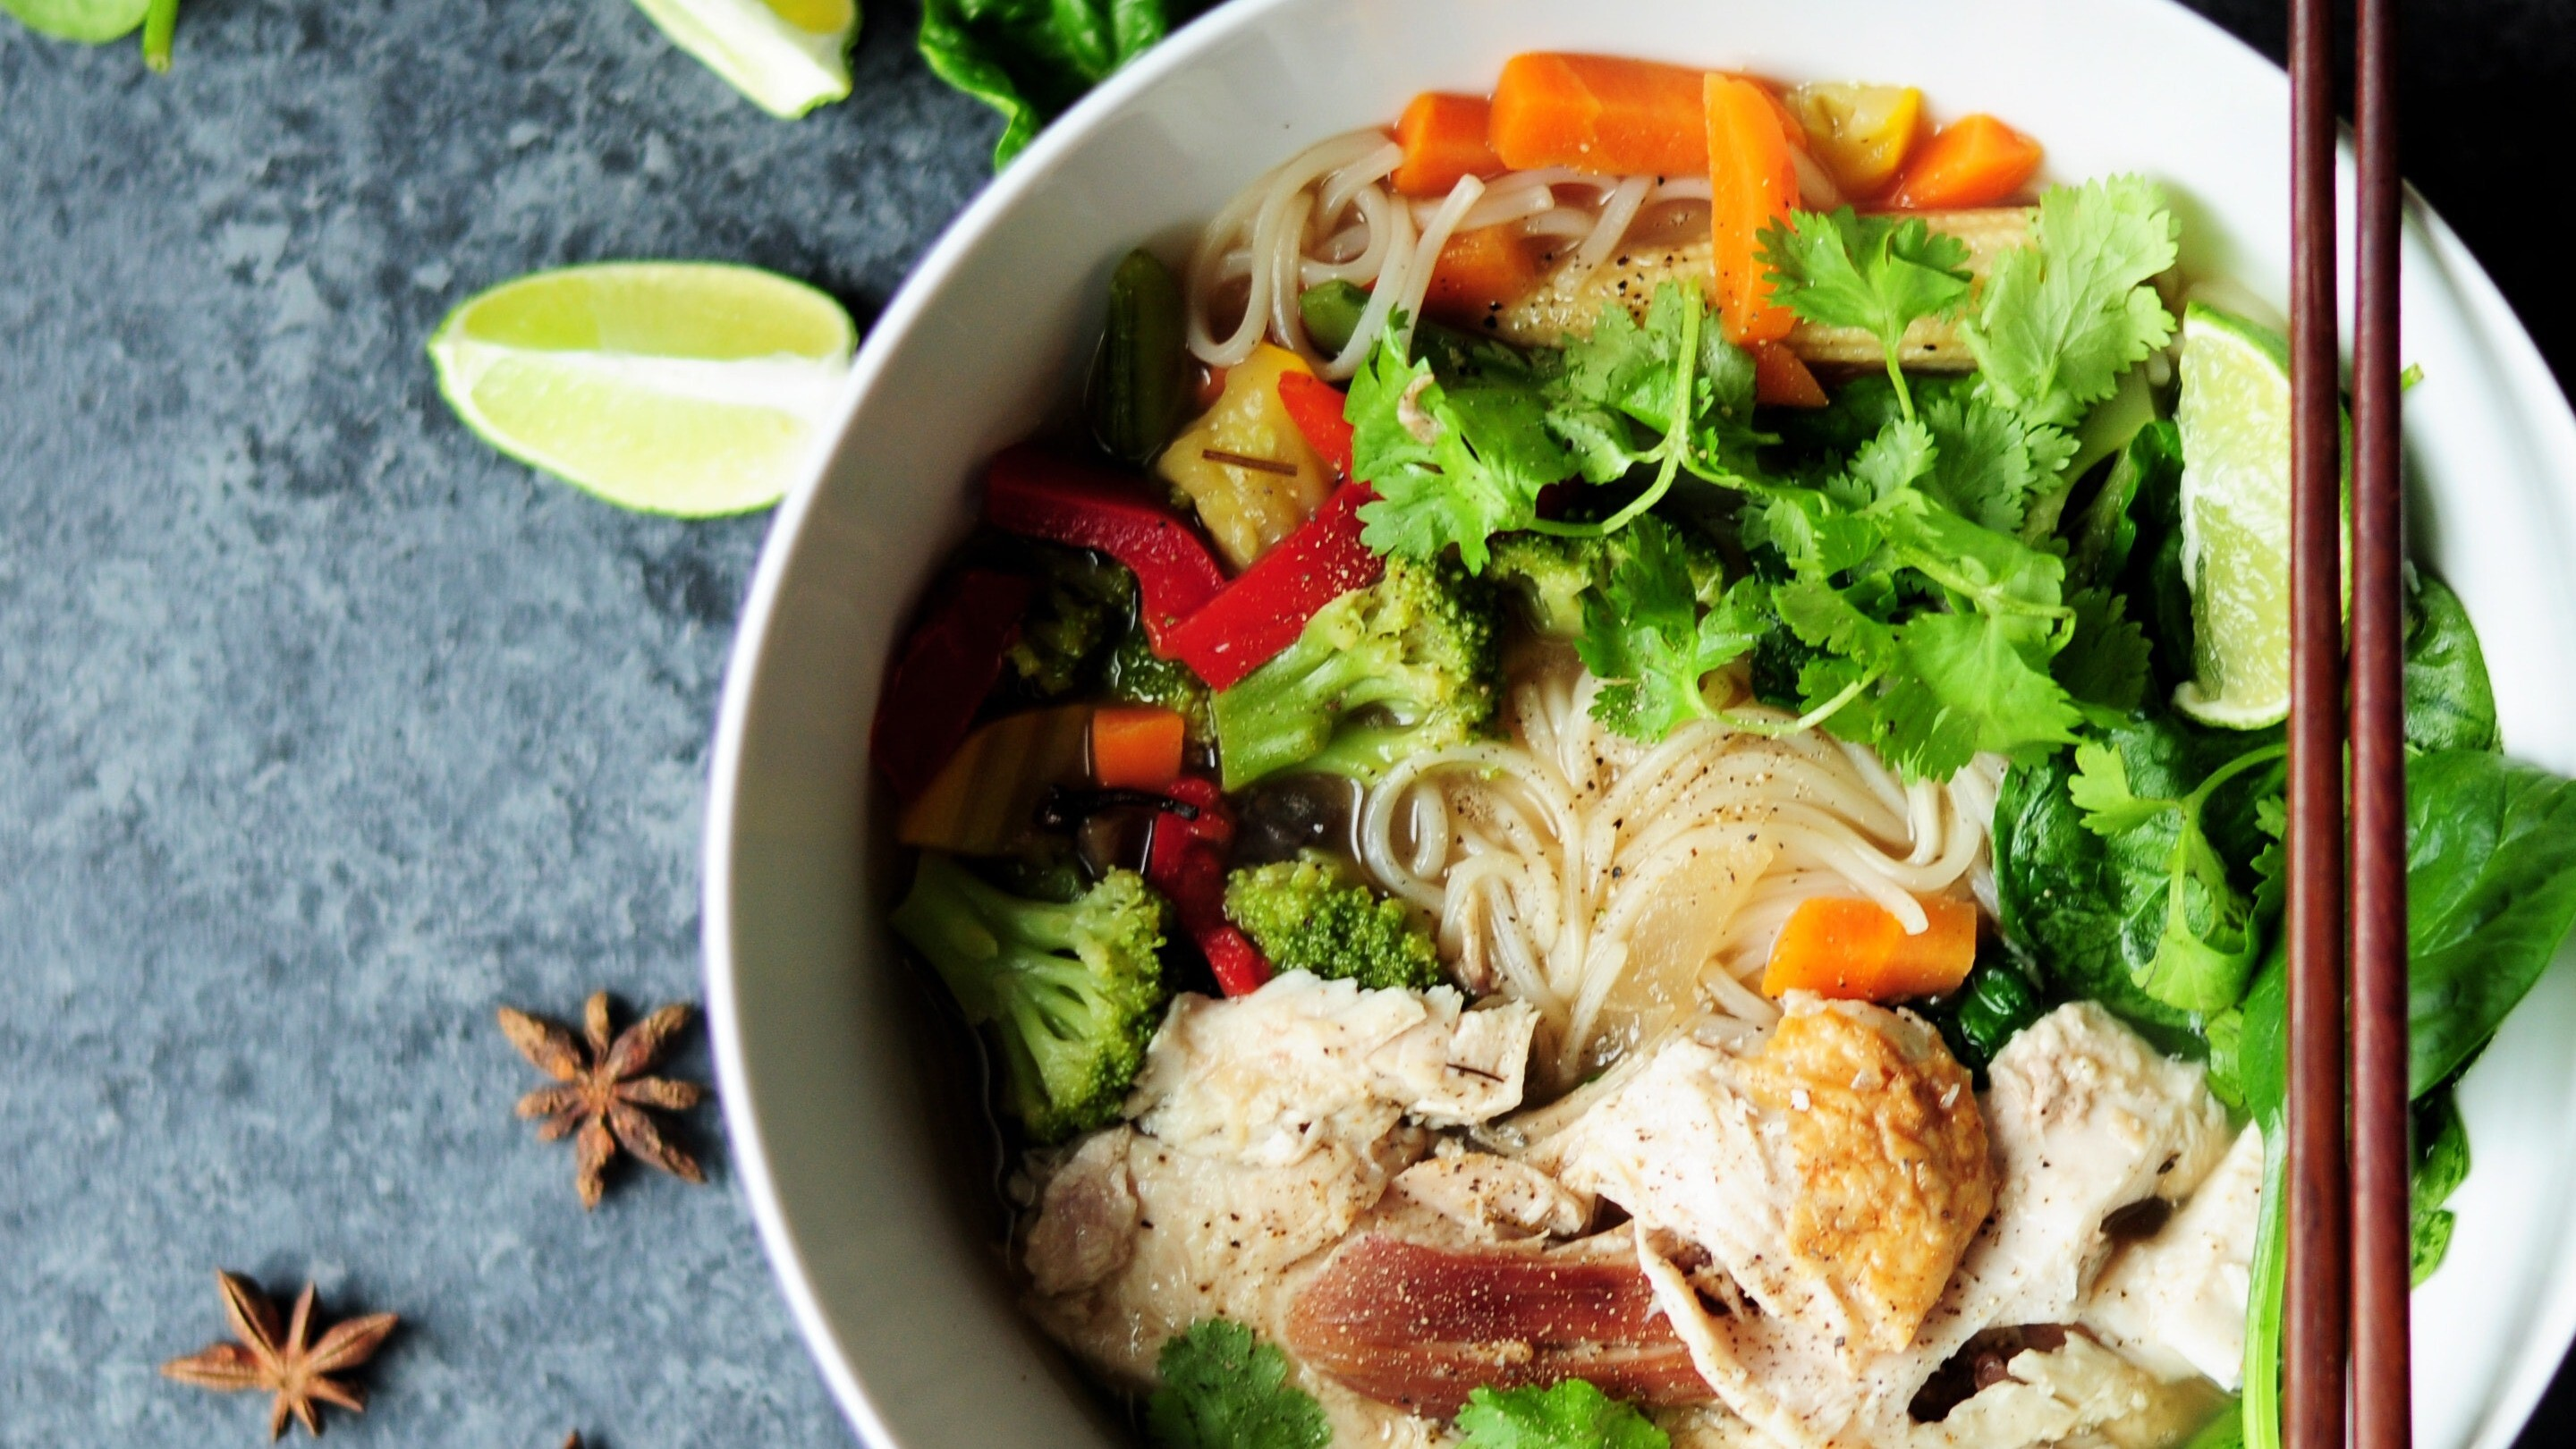 Salad And Chicken Noodle Chinese Food Dish Wallpaper Hd